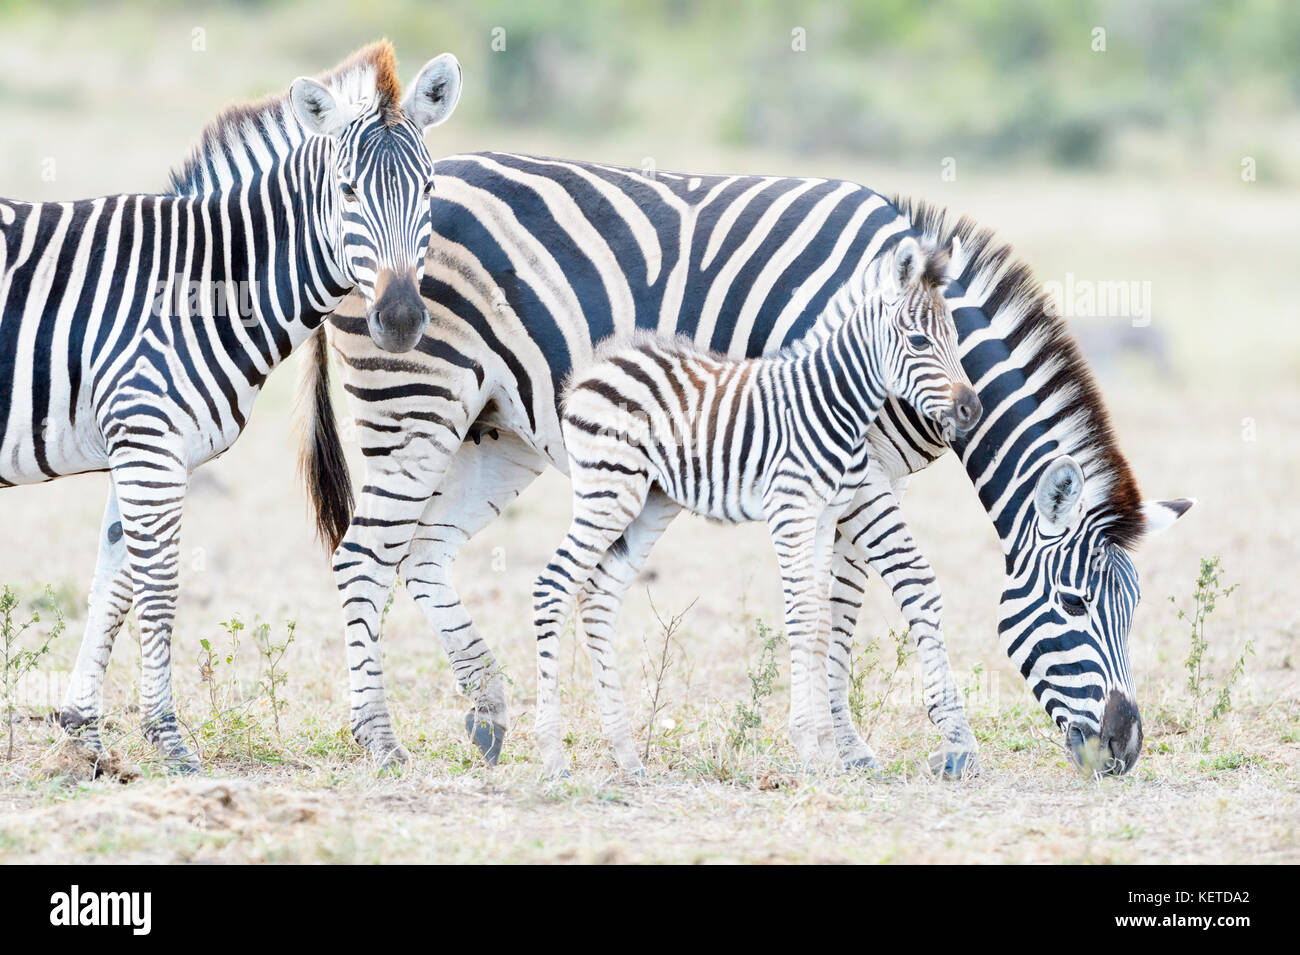 Plains zebra (Equus quagga) mother and foal on savanna, Kruger National Park, South Africa - Stock Image